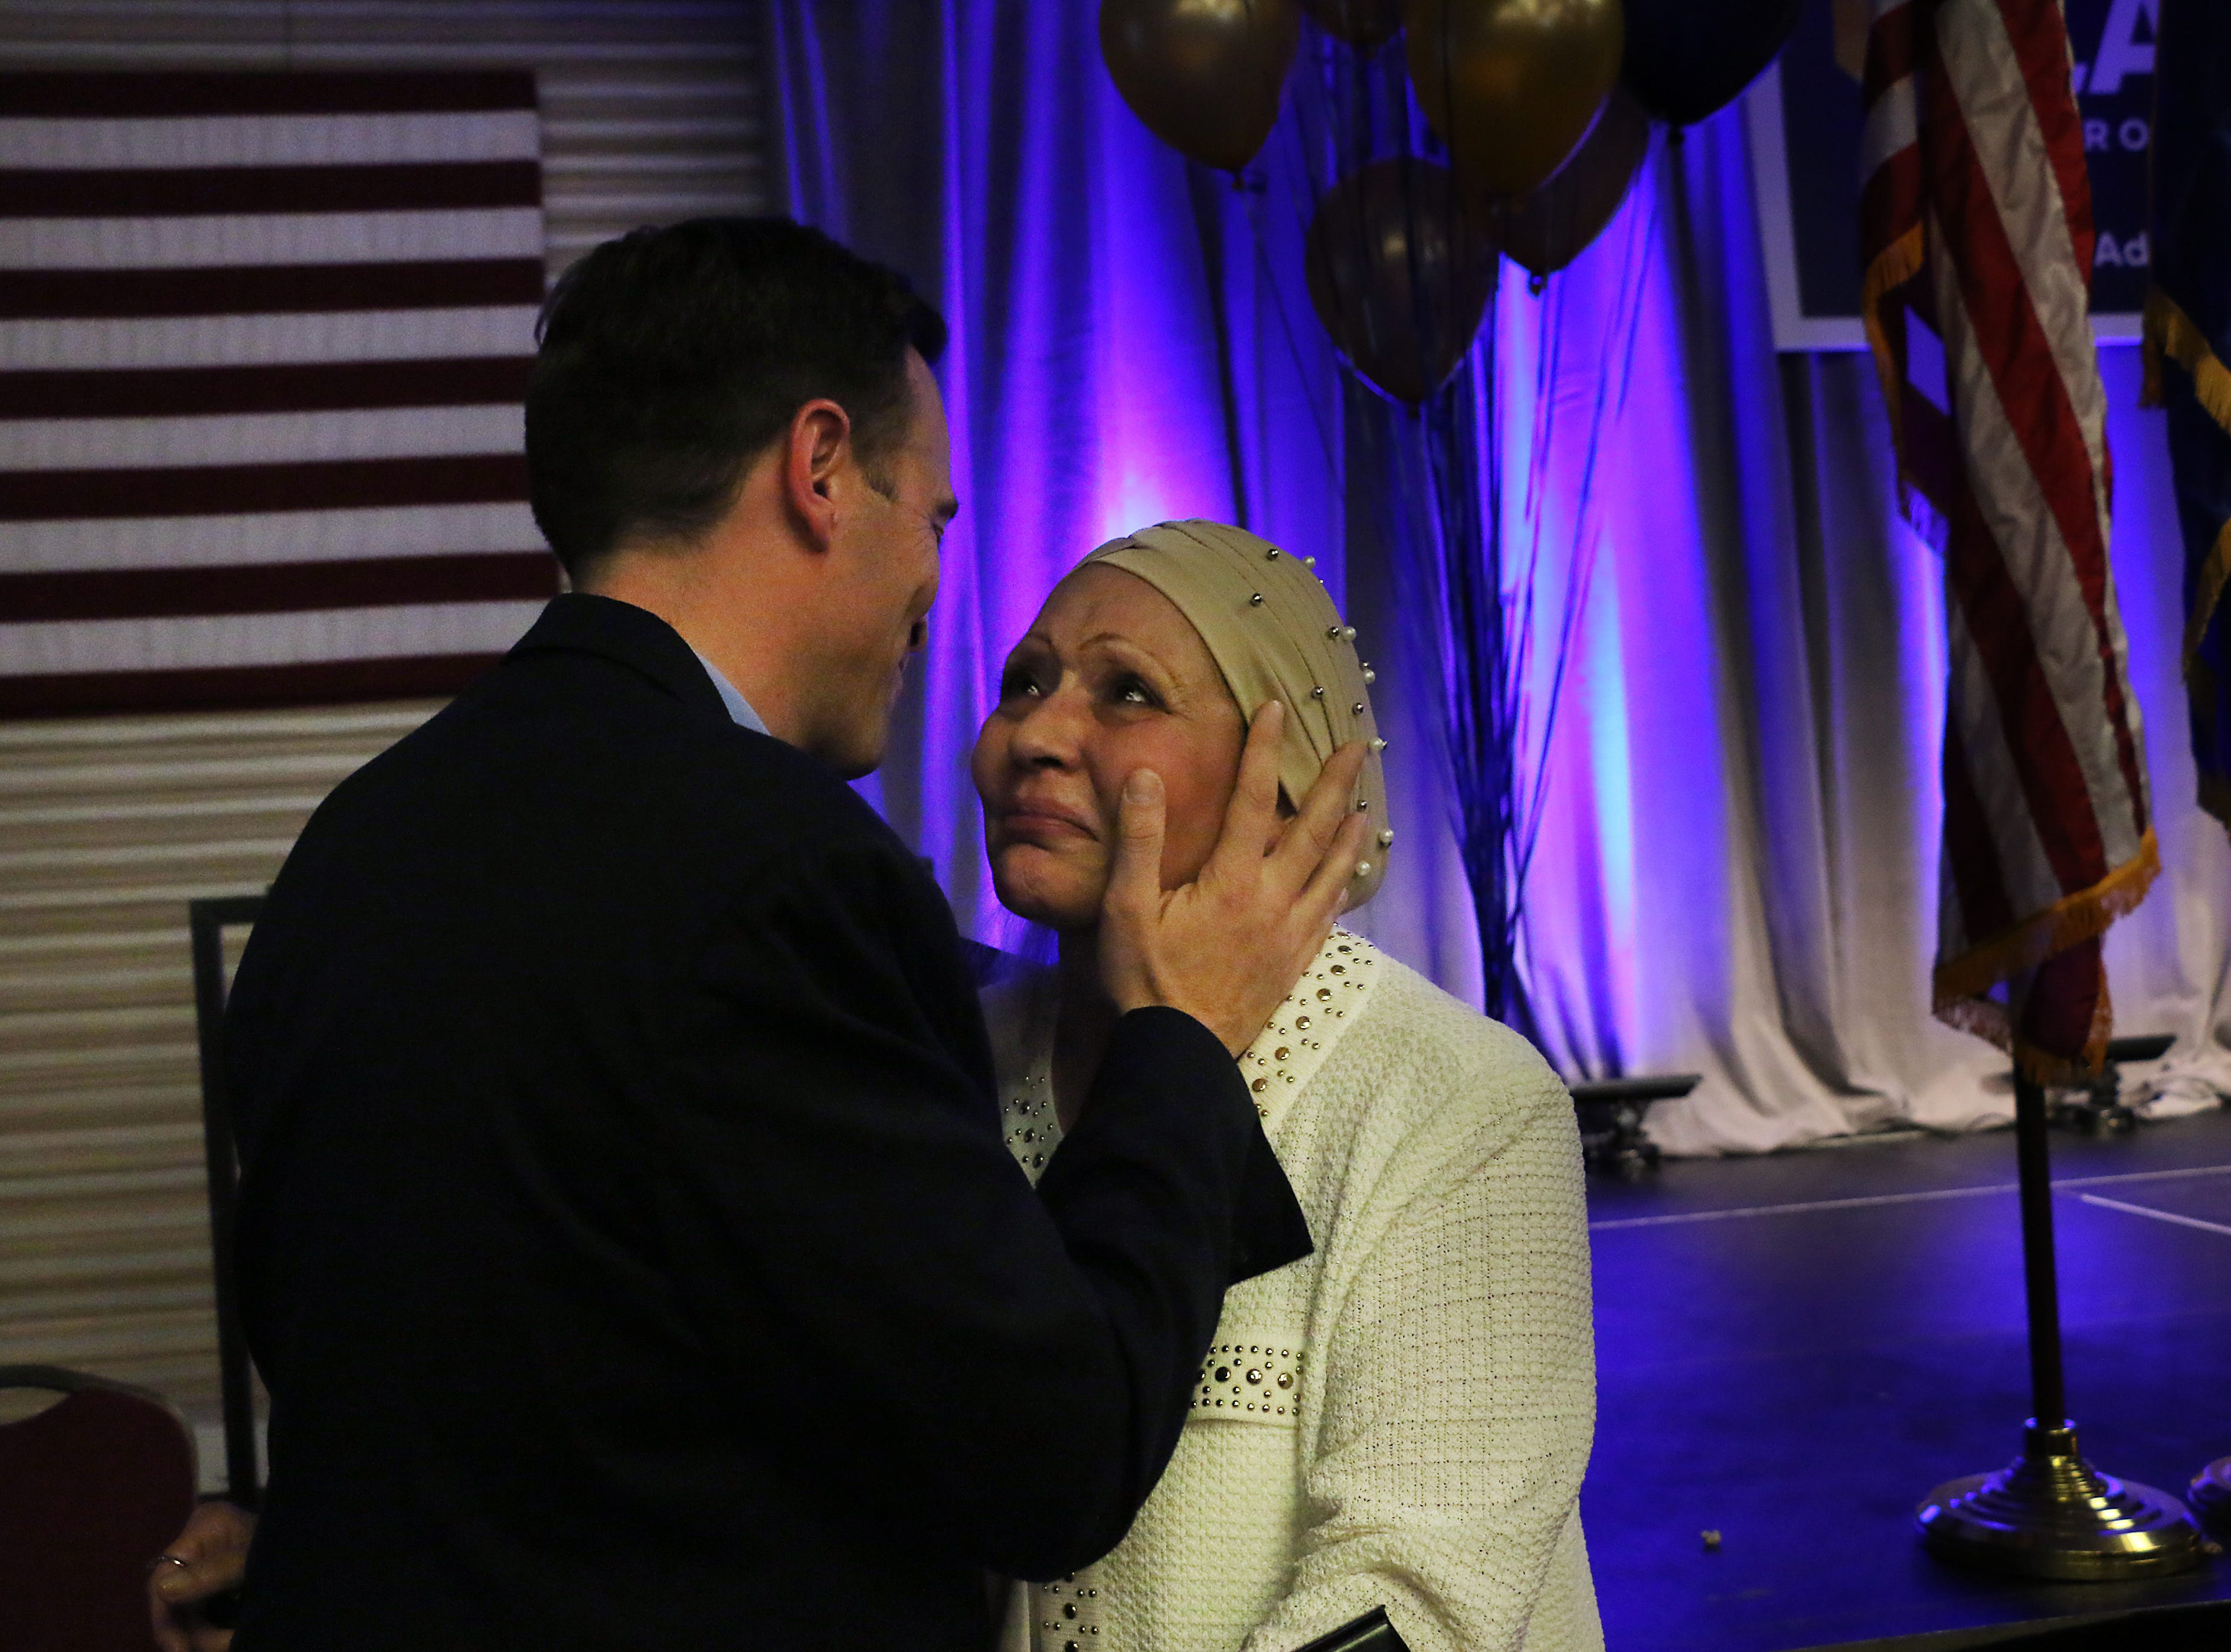 Nevada Attorney General Adam Laxalt greets his mother Michelle after conceding the race for Governor in front of supporters in the Crystal Ballroom in the Grand Sierra Resort in Reno on Nov. 6, 2018.